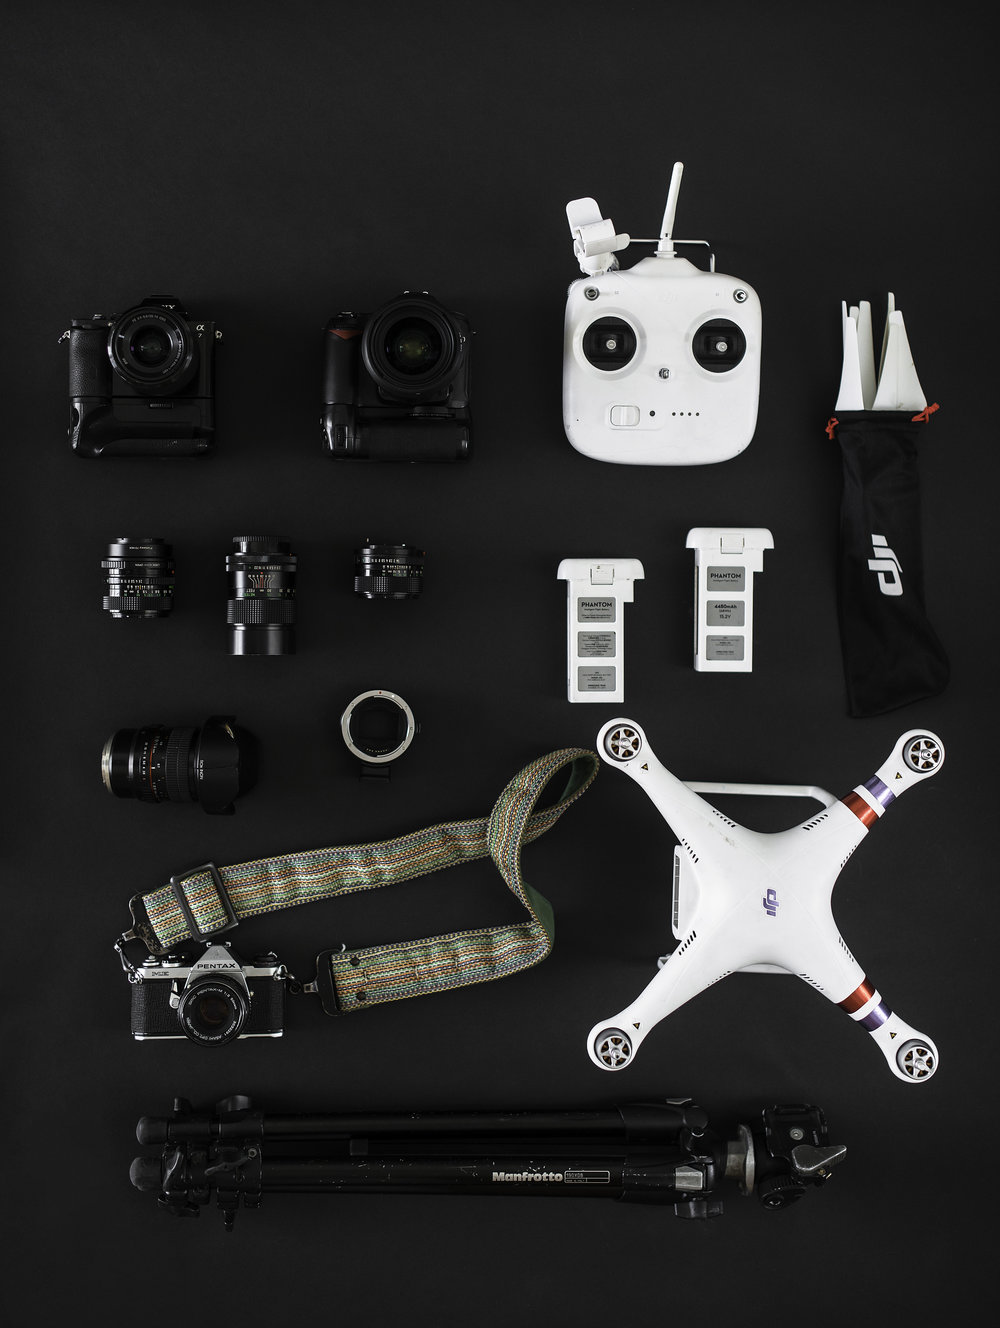 Overhead of Sony A7, Phantom 3, Nikon DSLR, Lenses and Tripod for Blog Post about Gear